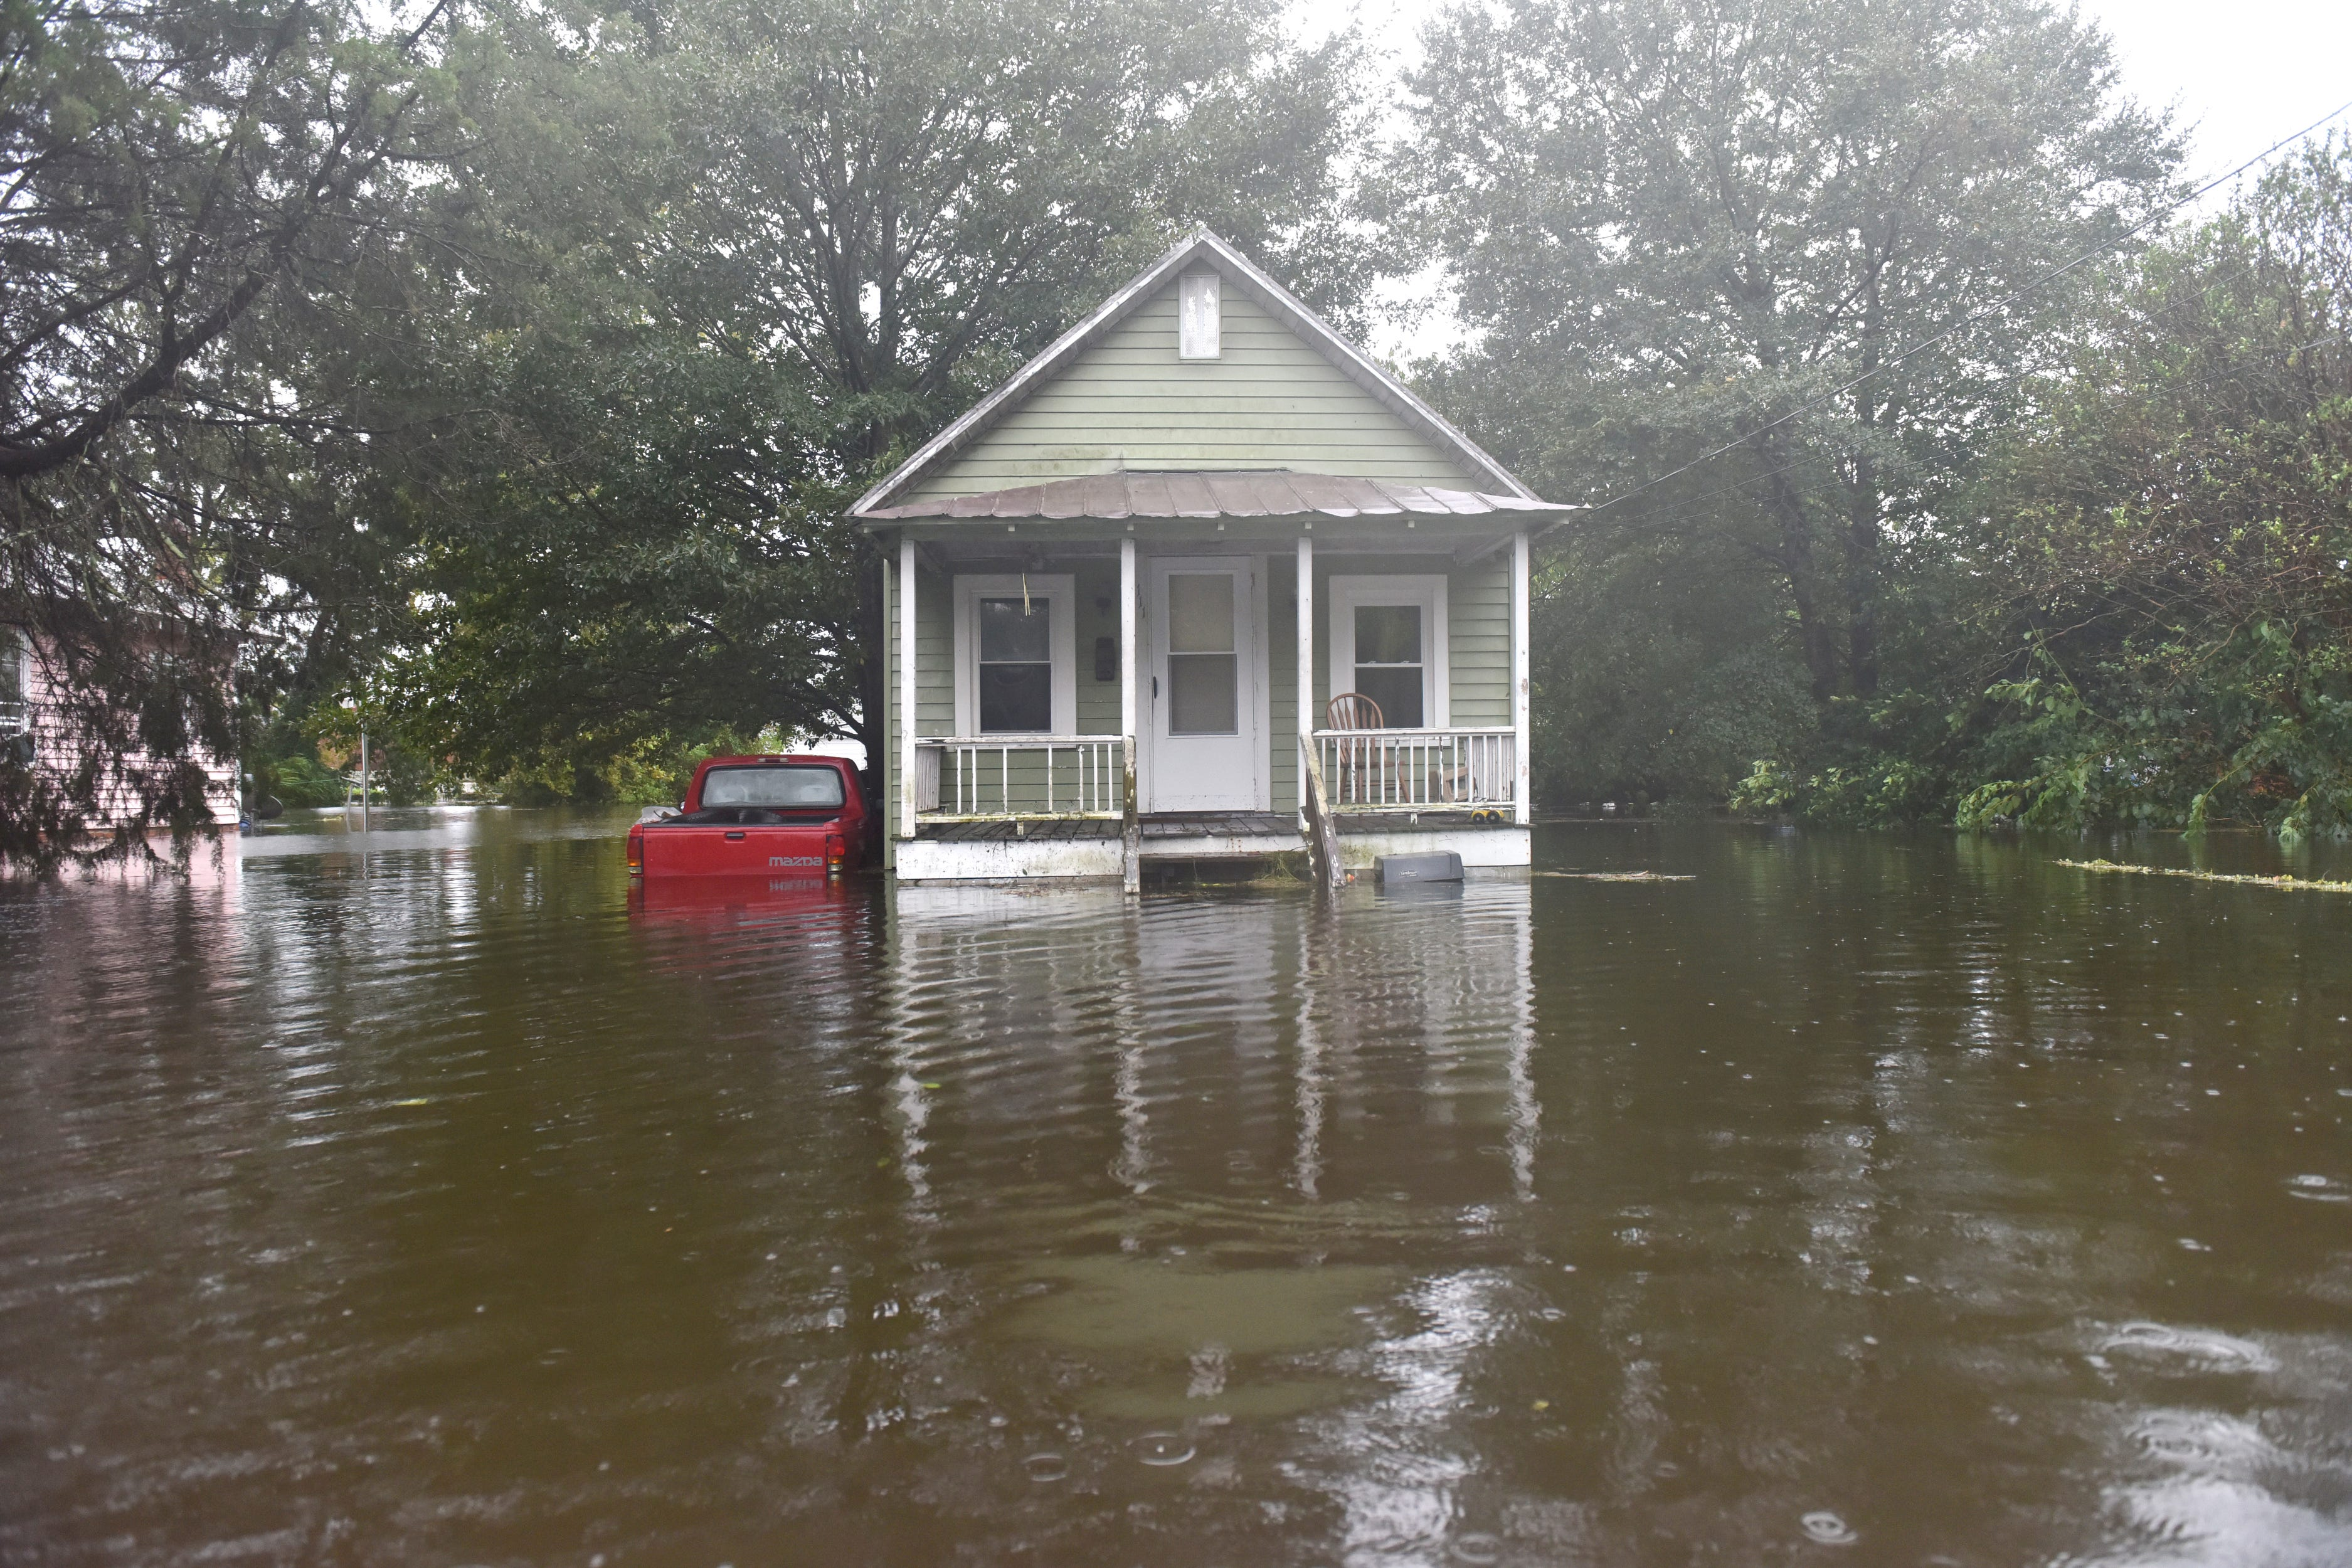 A home sits in high water on W 6th St after Hurricane Florence brought heavy rains to Washington, N.C. on Friday afternoon on September 14, 2018.  (Via OlyDrop)